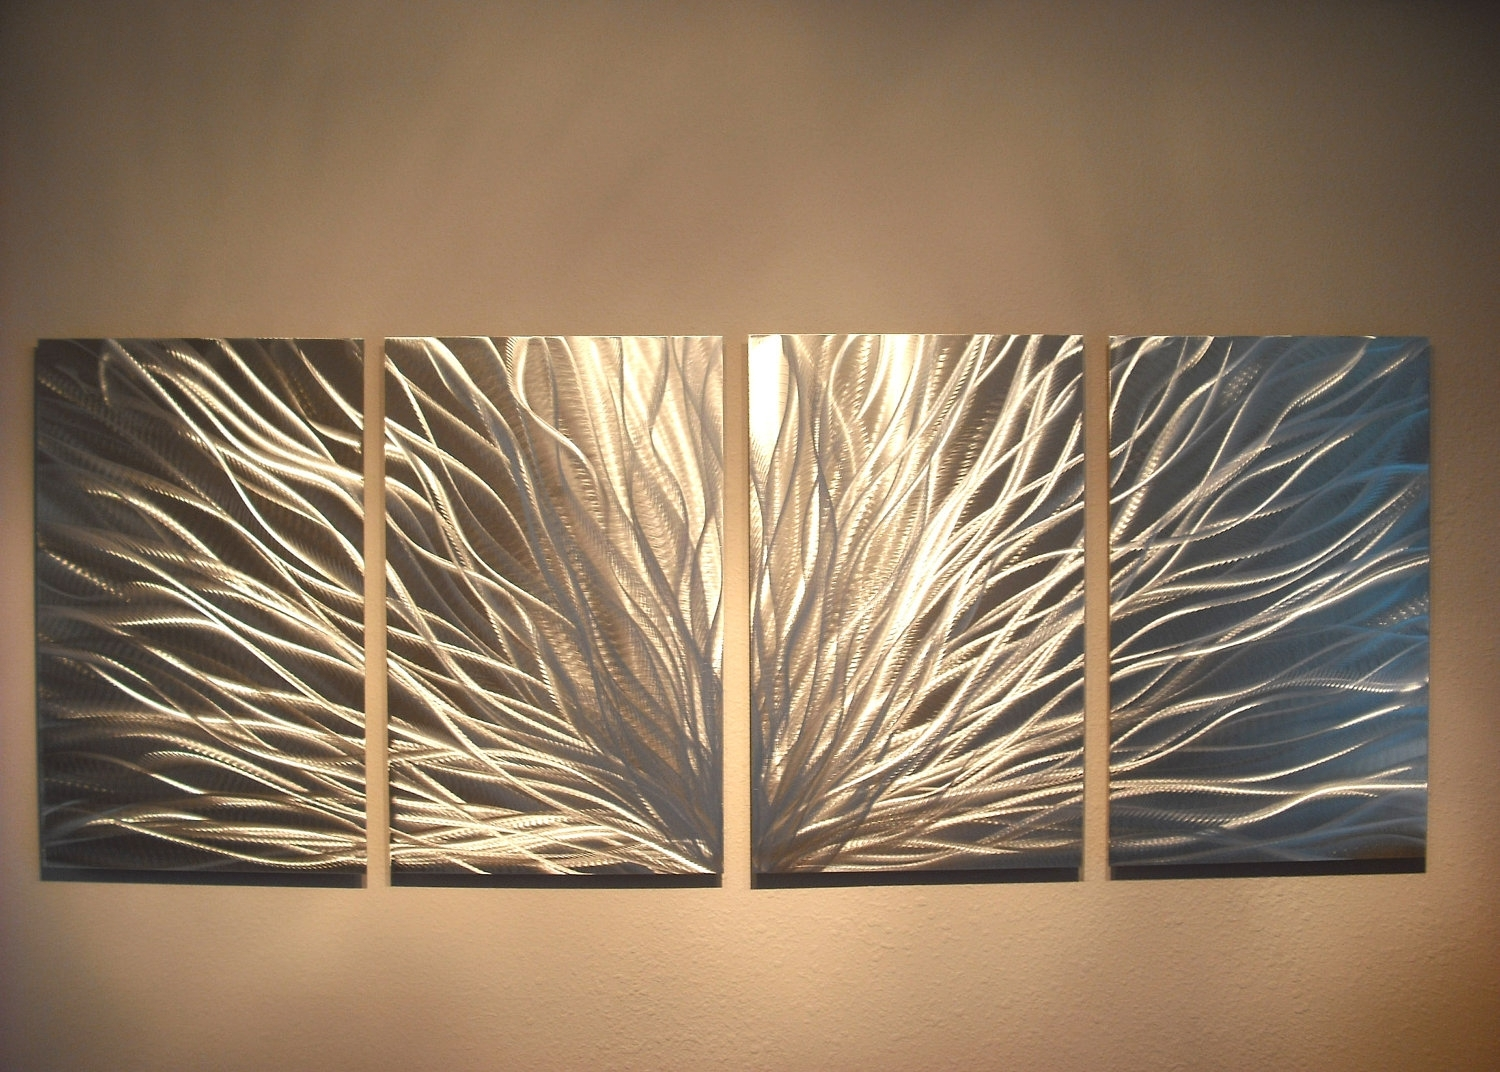 Radiance – Abstract Metal Wall Art Contemporary Modern Decor With Recent Wall Art Metal (View 2 of 20)